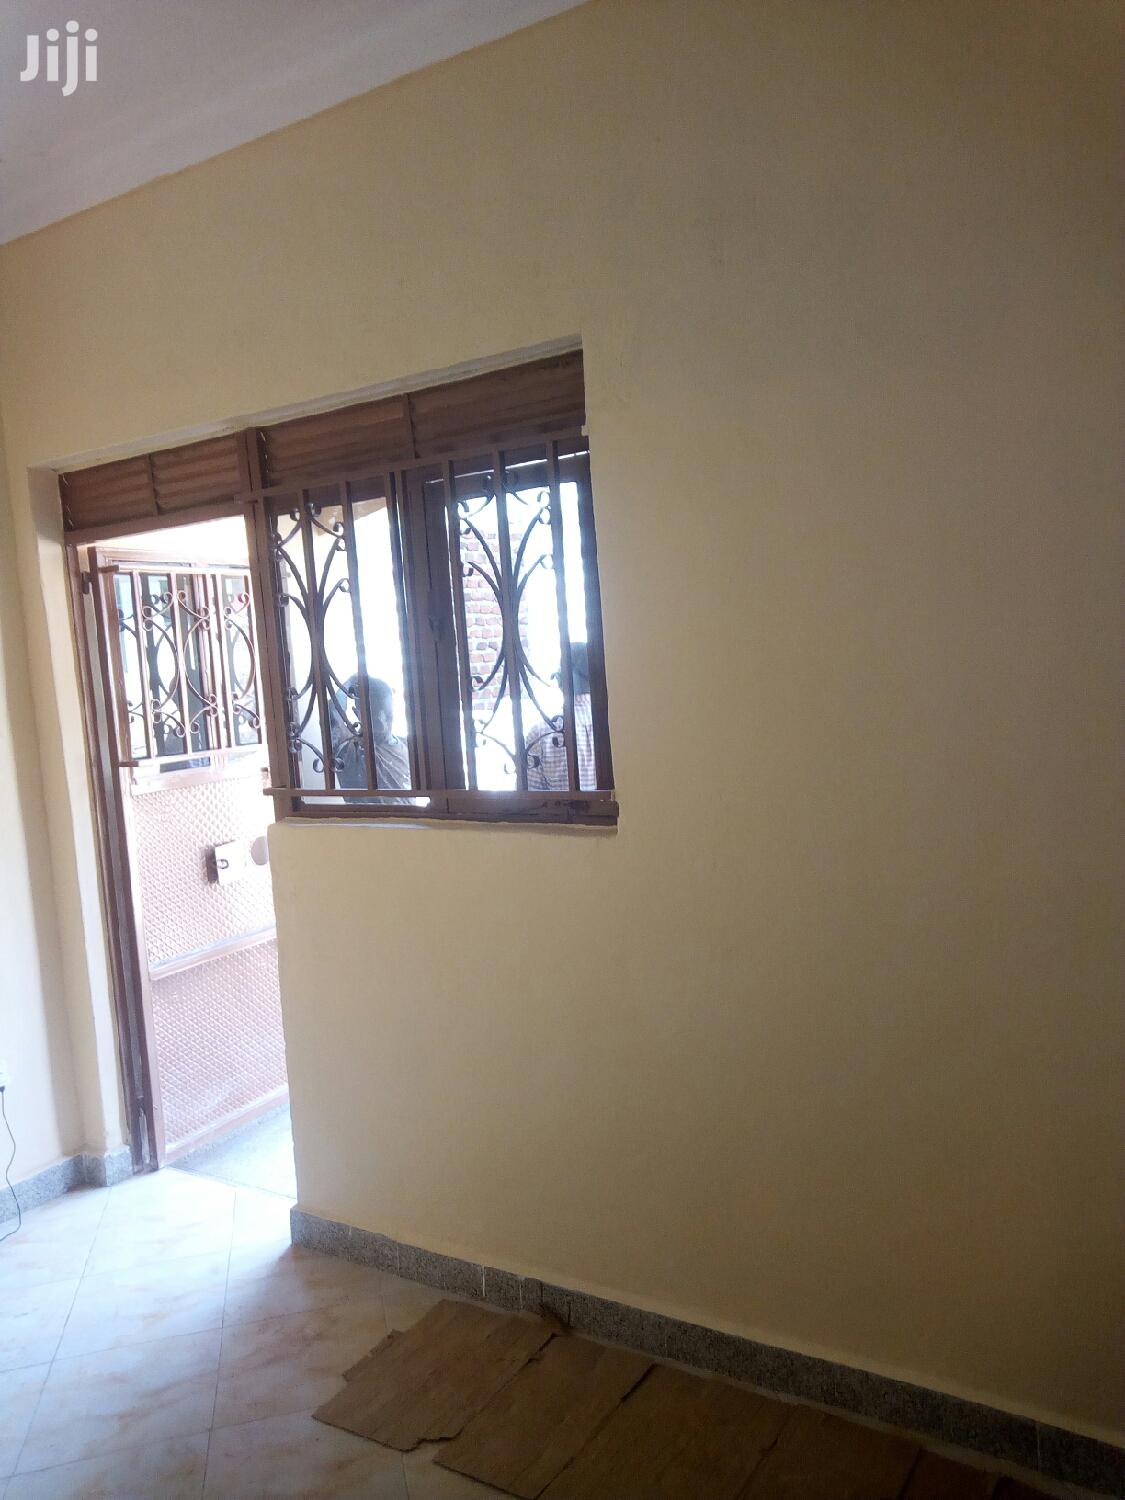 New Single Room for Rent in Kireka. | Houses & Apartments For Rent for sale in Kampala, Central Region, Uganda